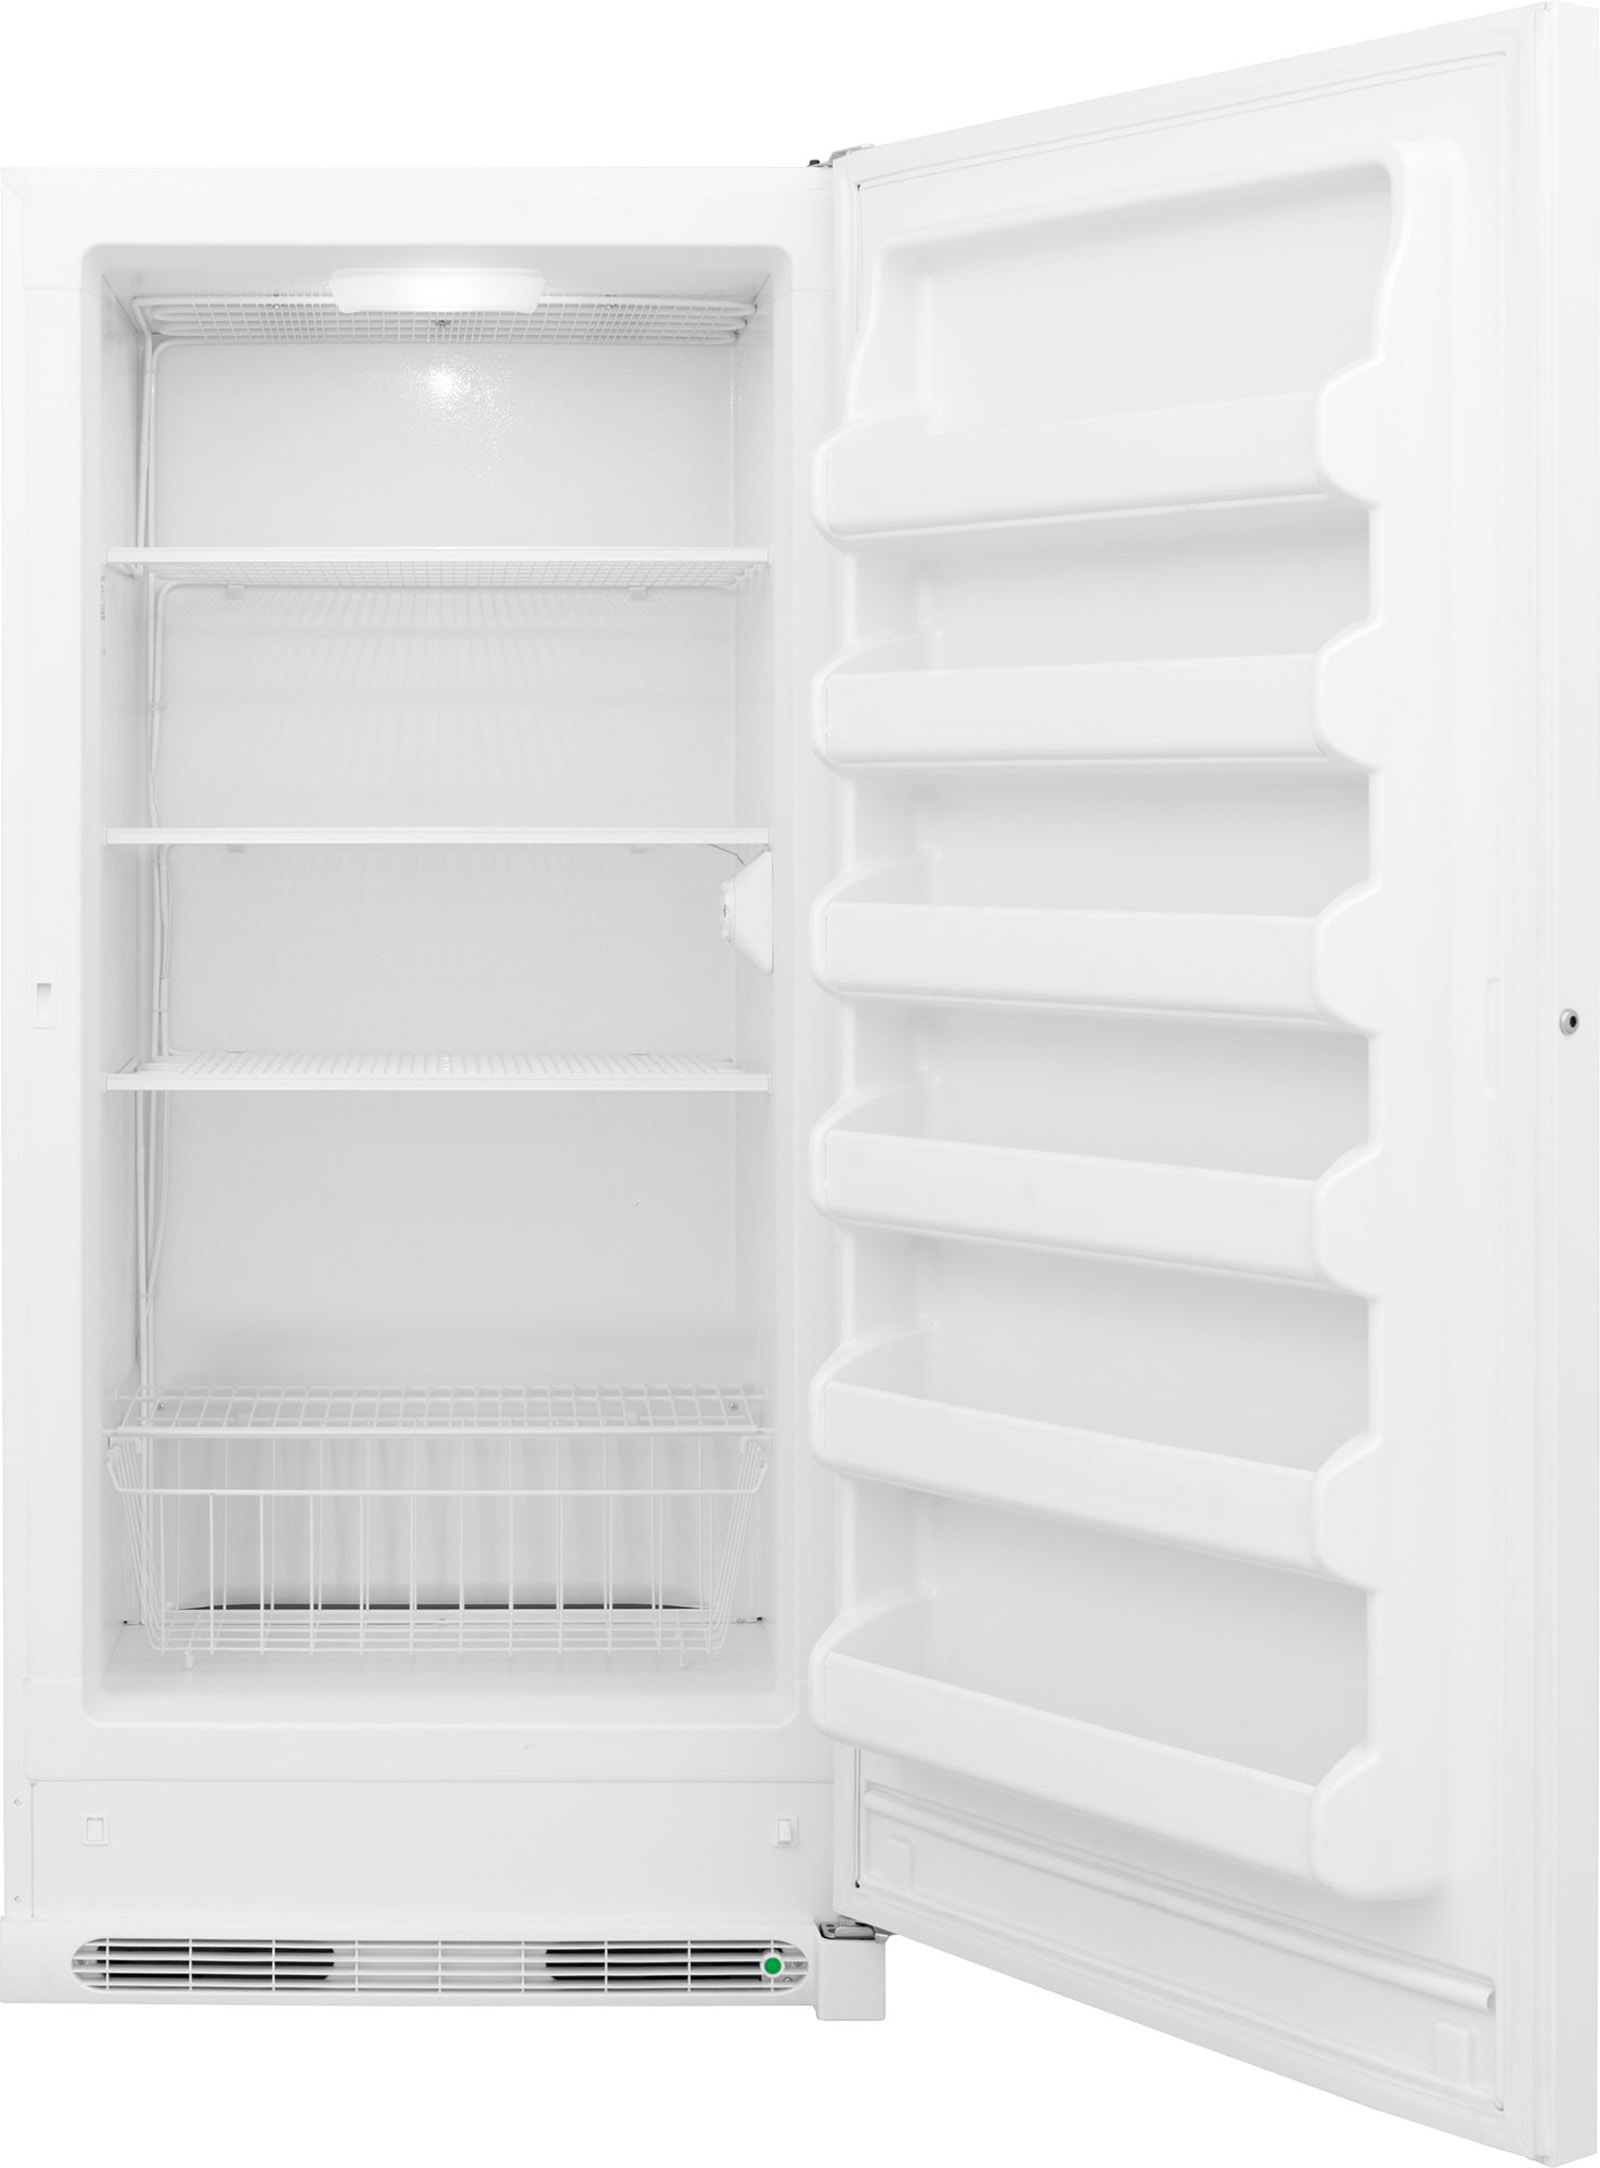 Kenmore 21042 20.9 cu. ft. Upright Freezer - White